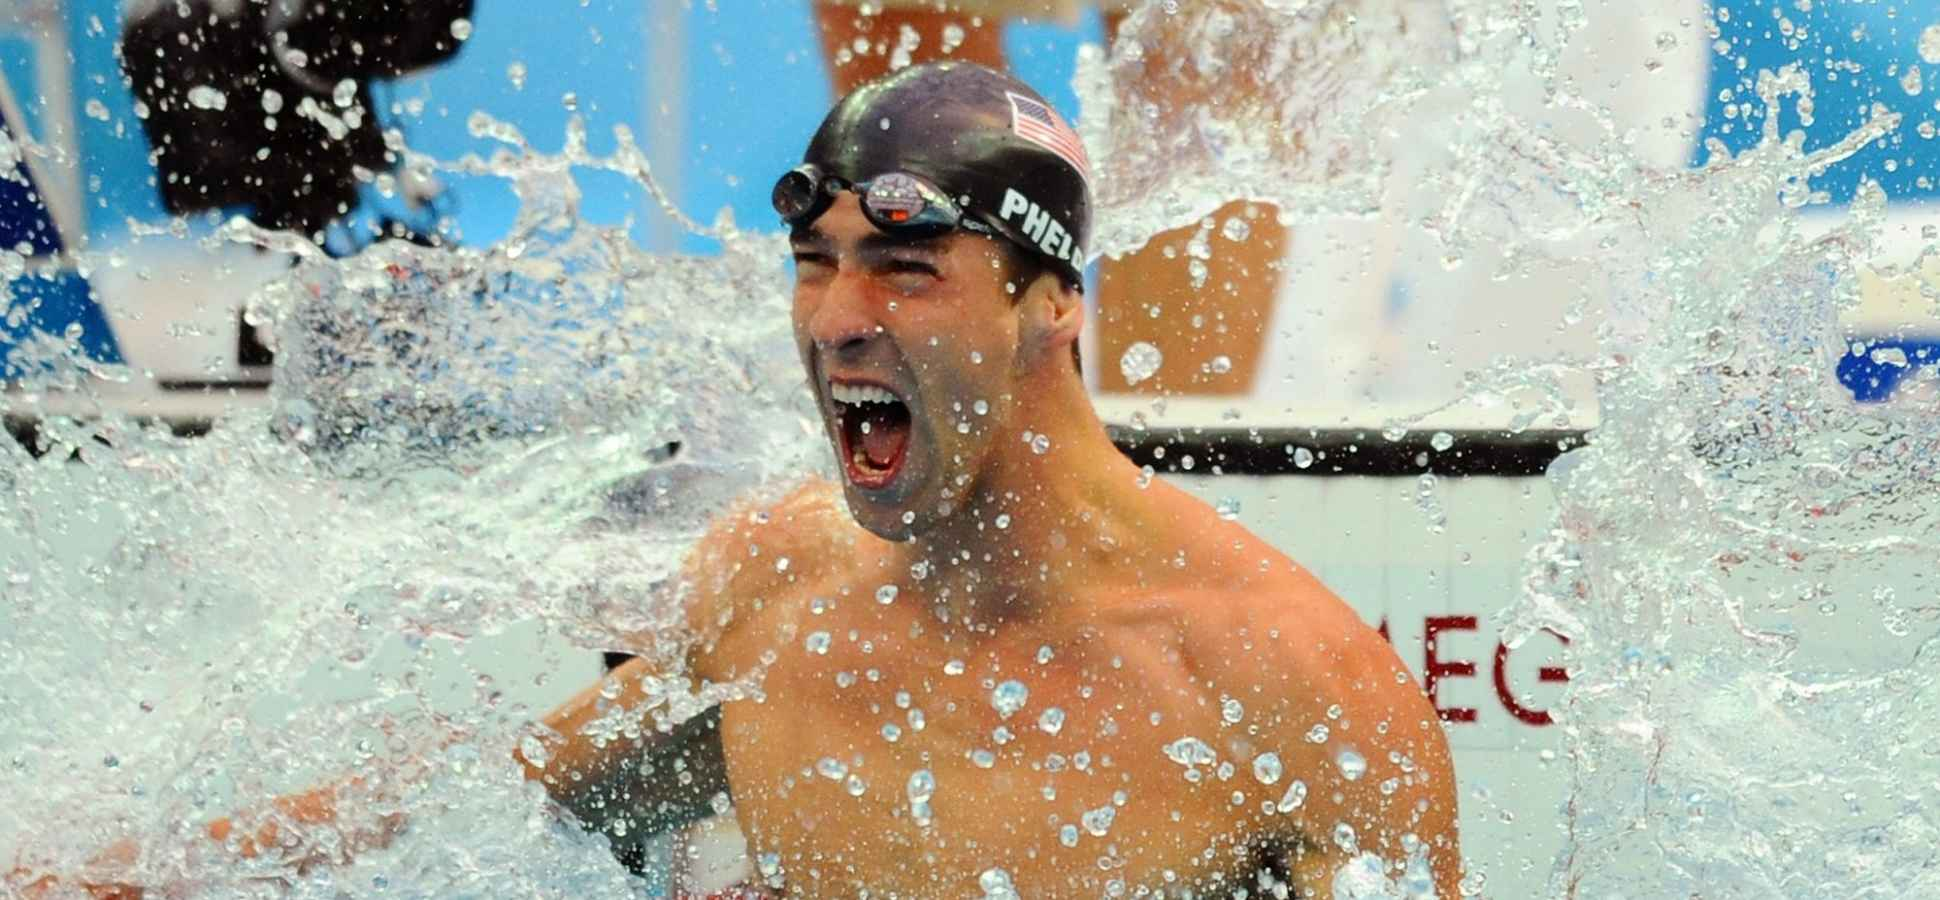 15 Michael Phelps Quotes That Will Inspire You to Be Your Best Self